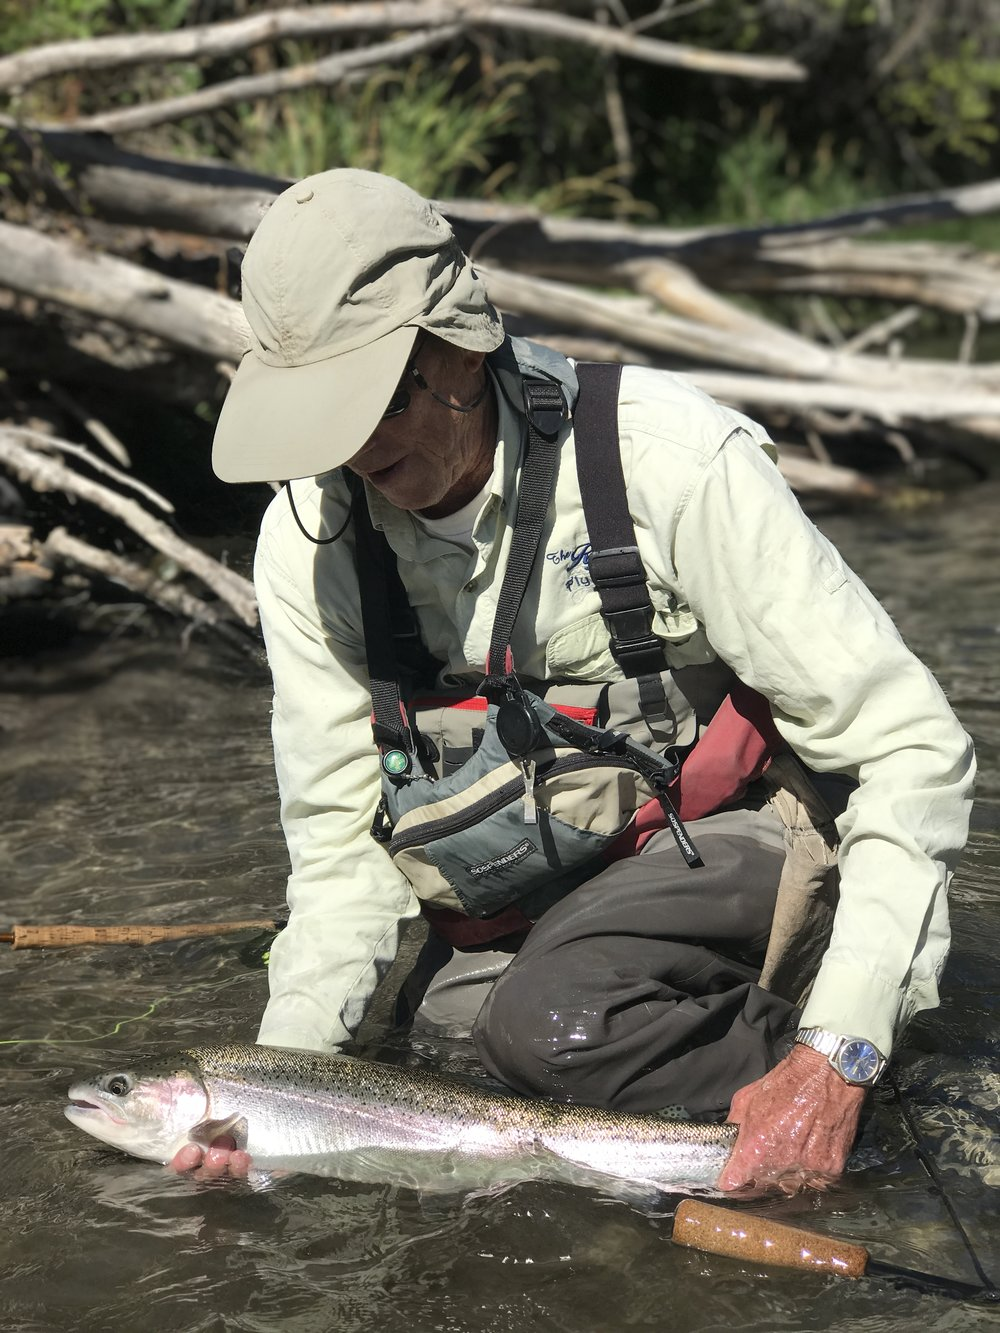 A perfect moment cradling a specimen of a steelhead